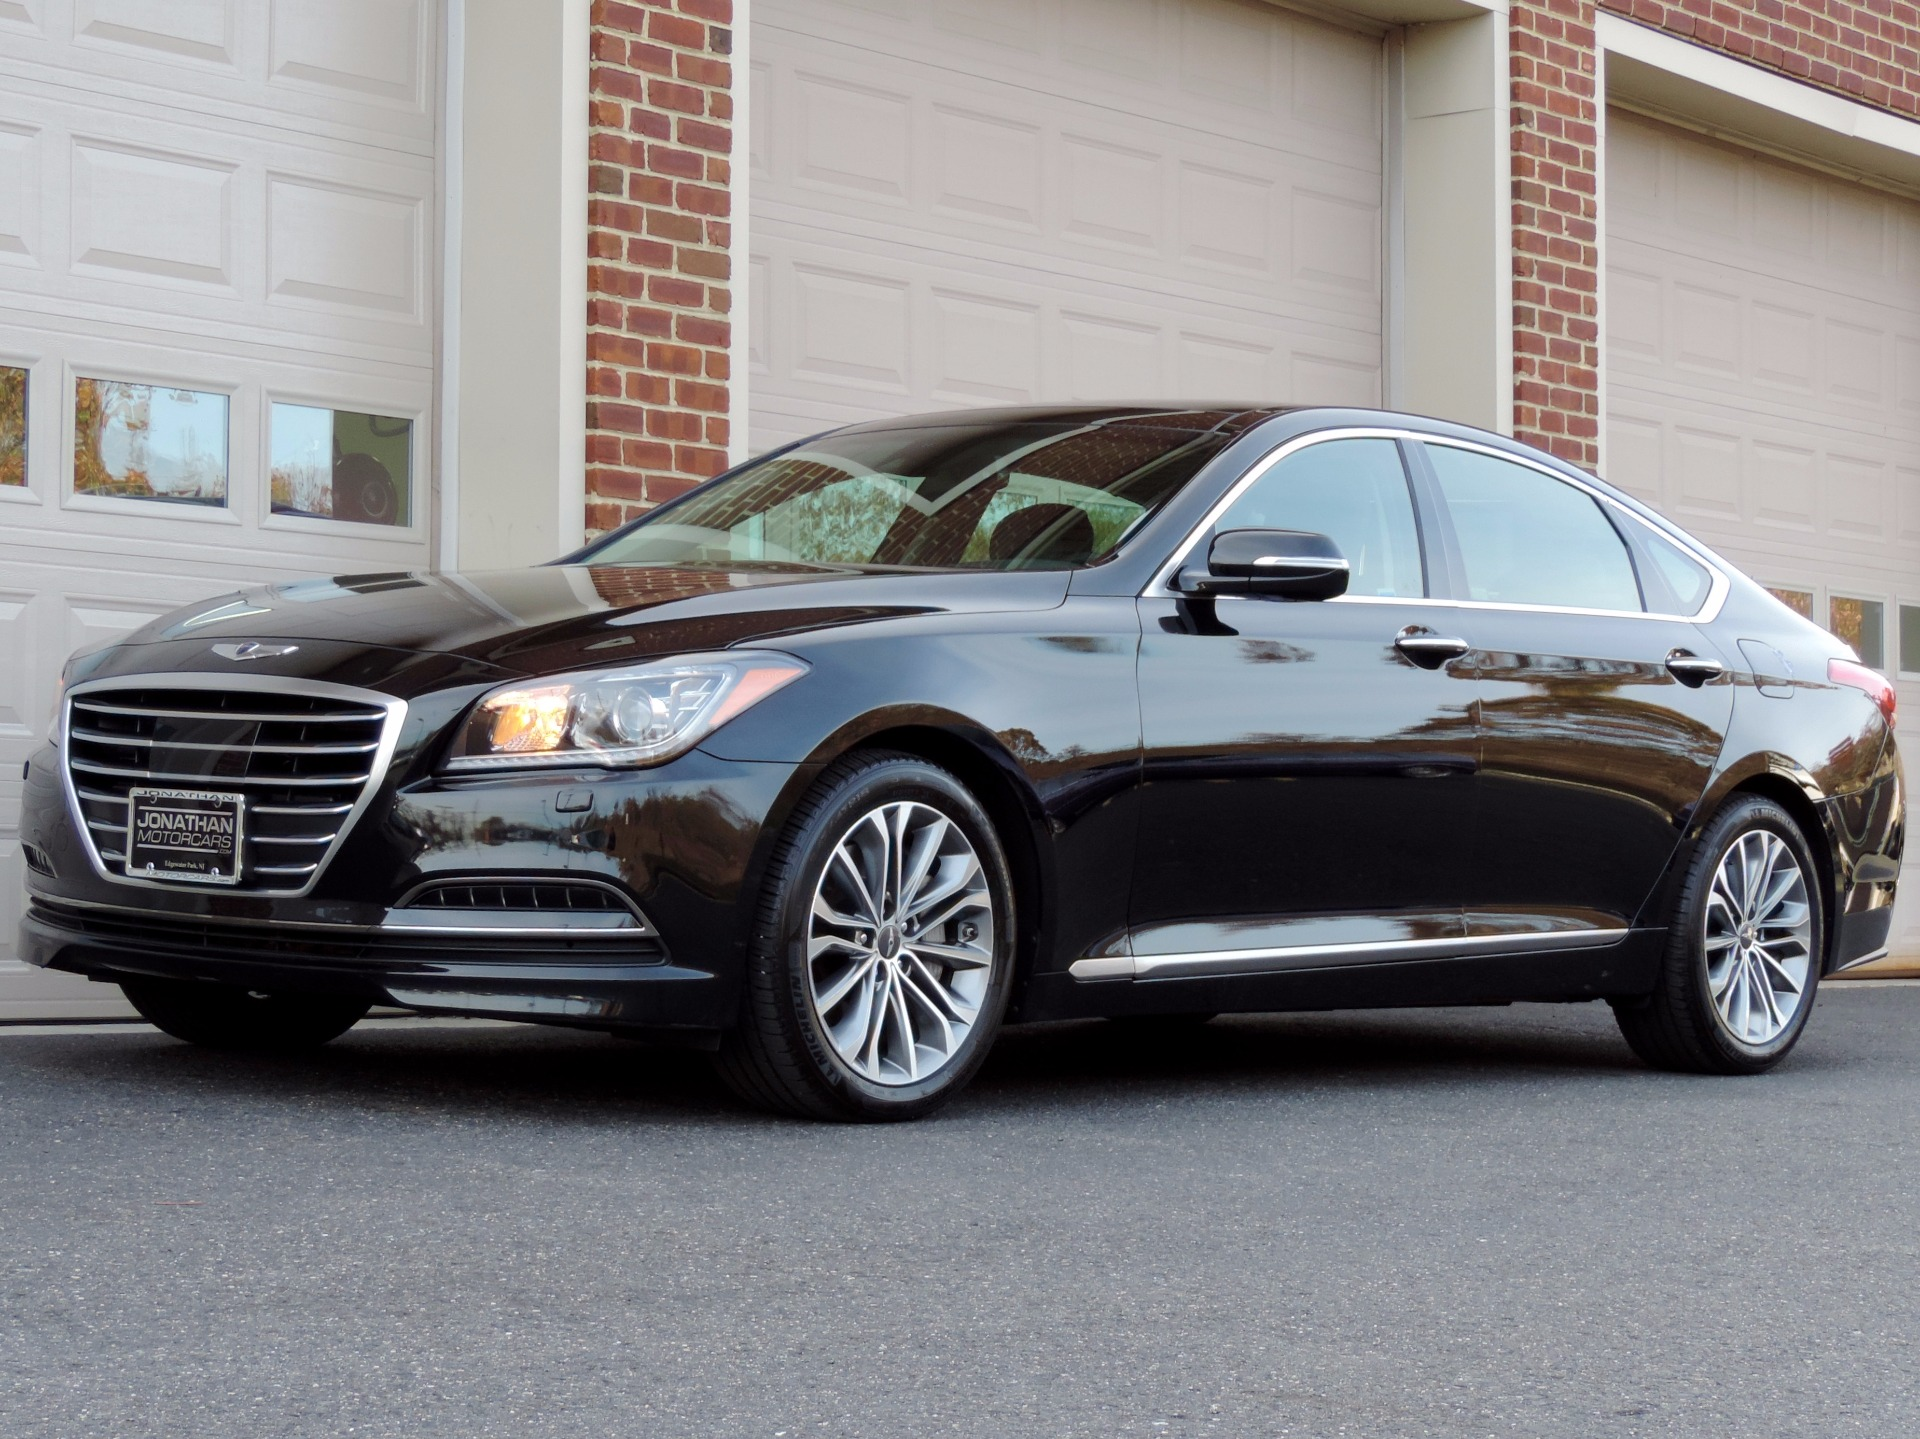 2015 hyundai genesis 3 8l stock 040500 for sale near edgewater park nj nj hyundai dealer. Black Bedroom Furniture Sets. Home Design Ideas